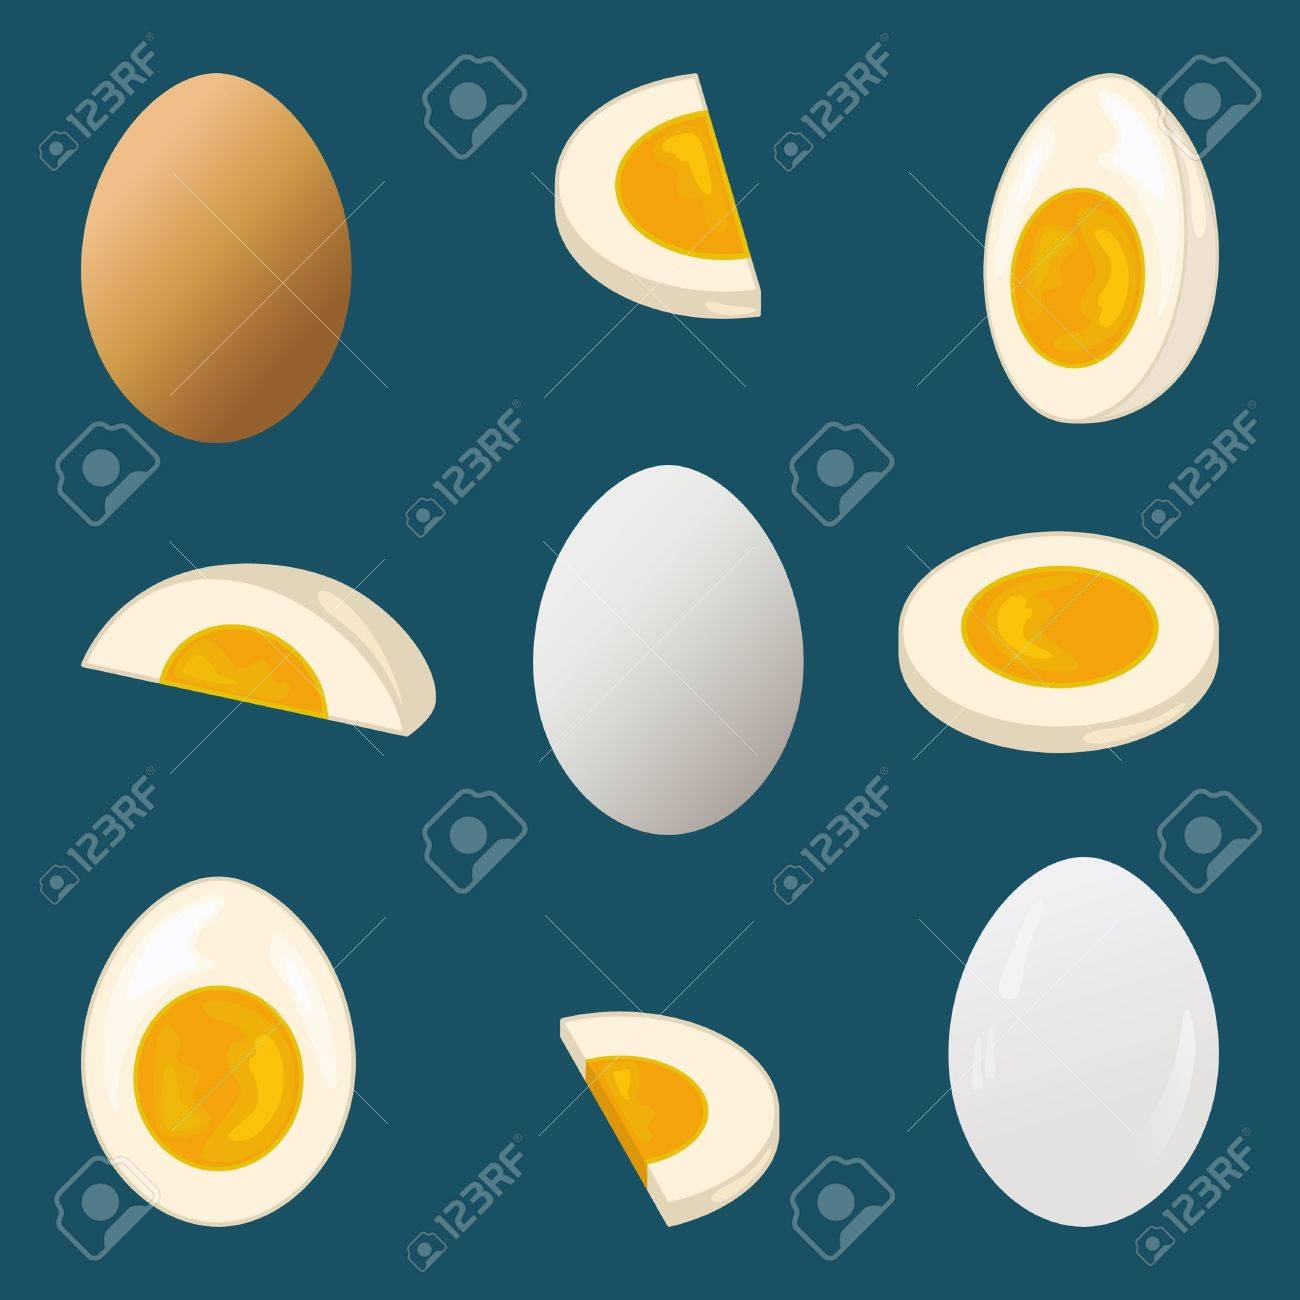 Hard-boiled egg, entire and sliced, nine views Stock Vector - 15333218